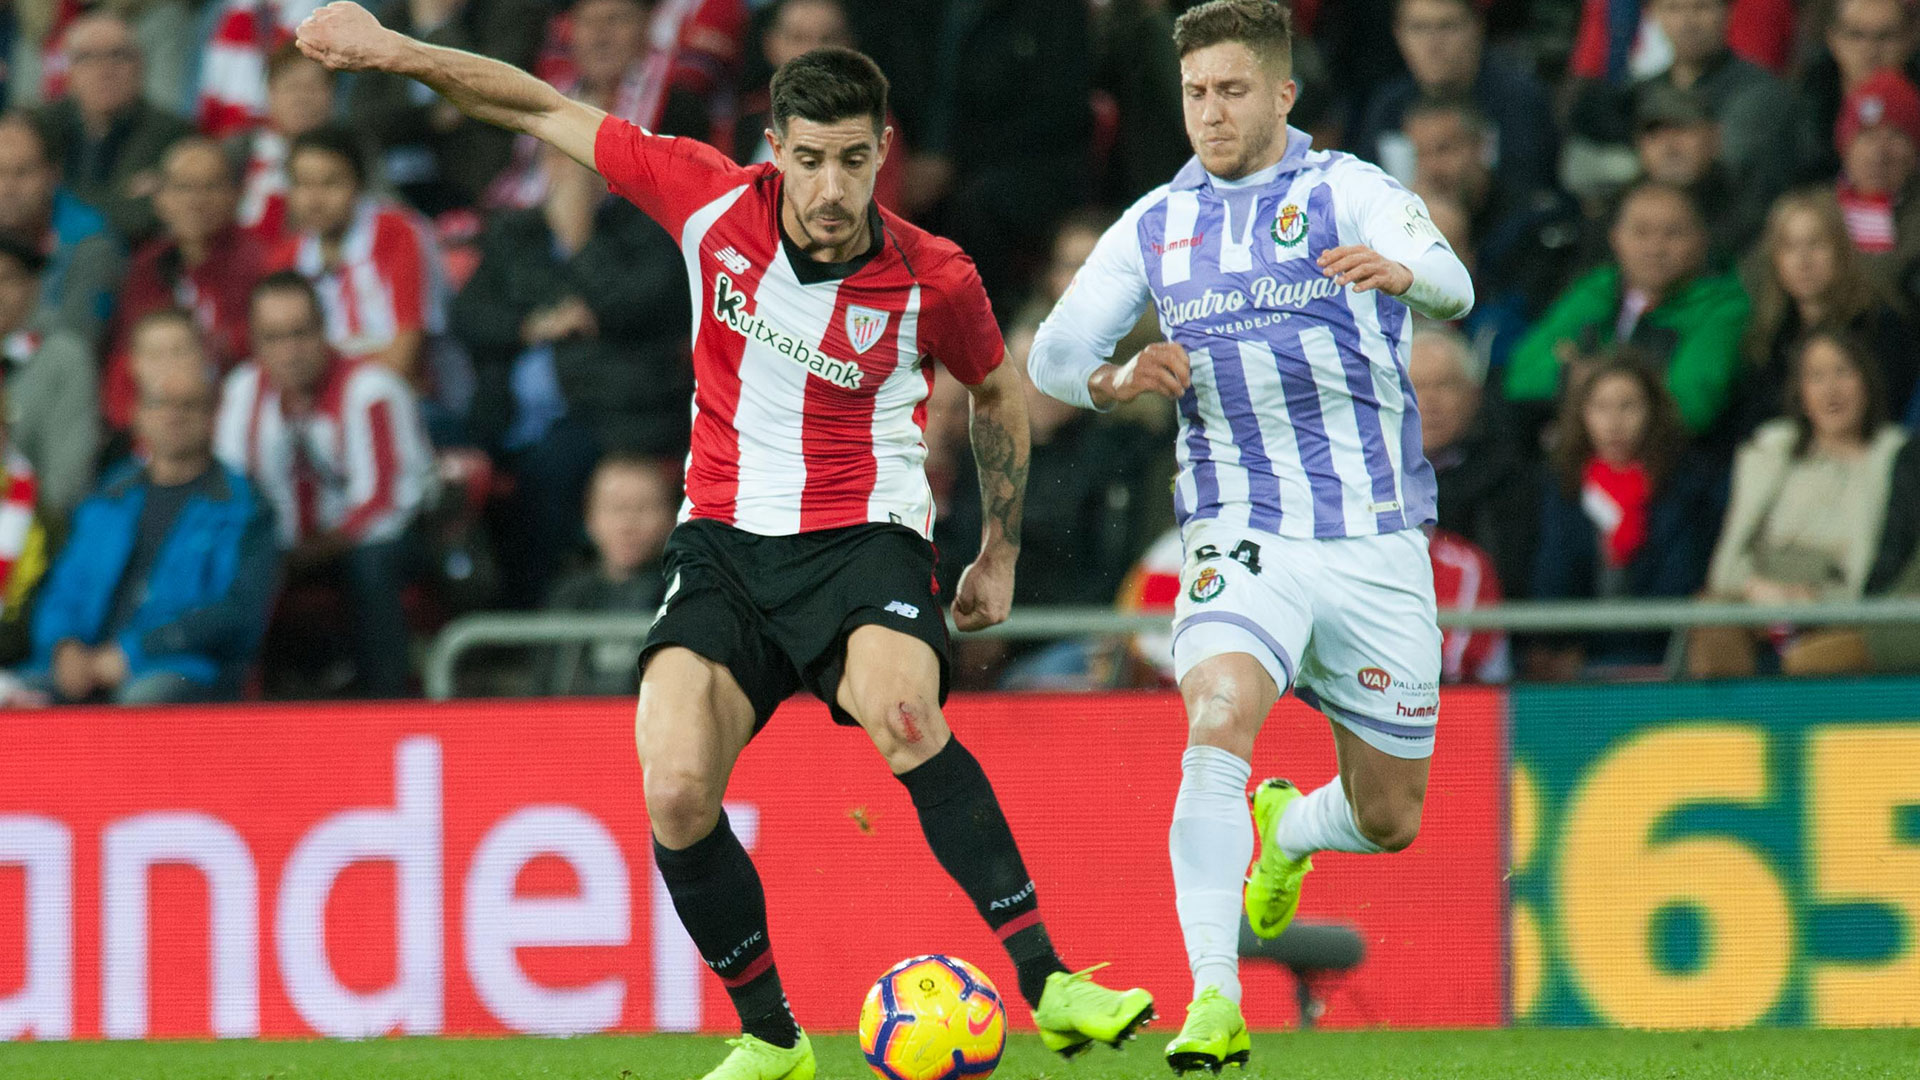 Billets pour le match Real Valladolid – Athletic Club